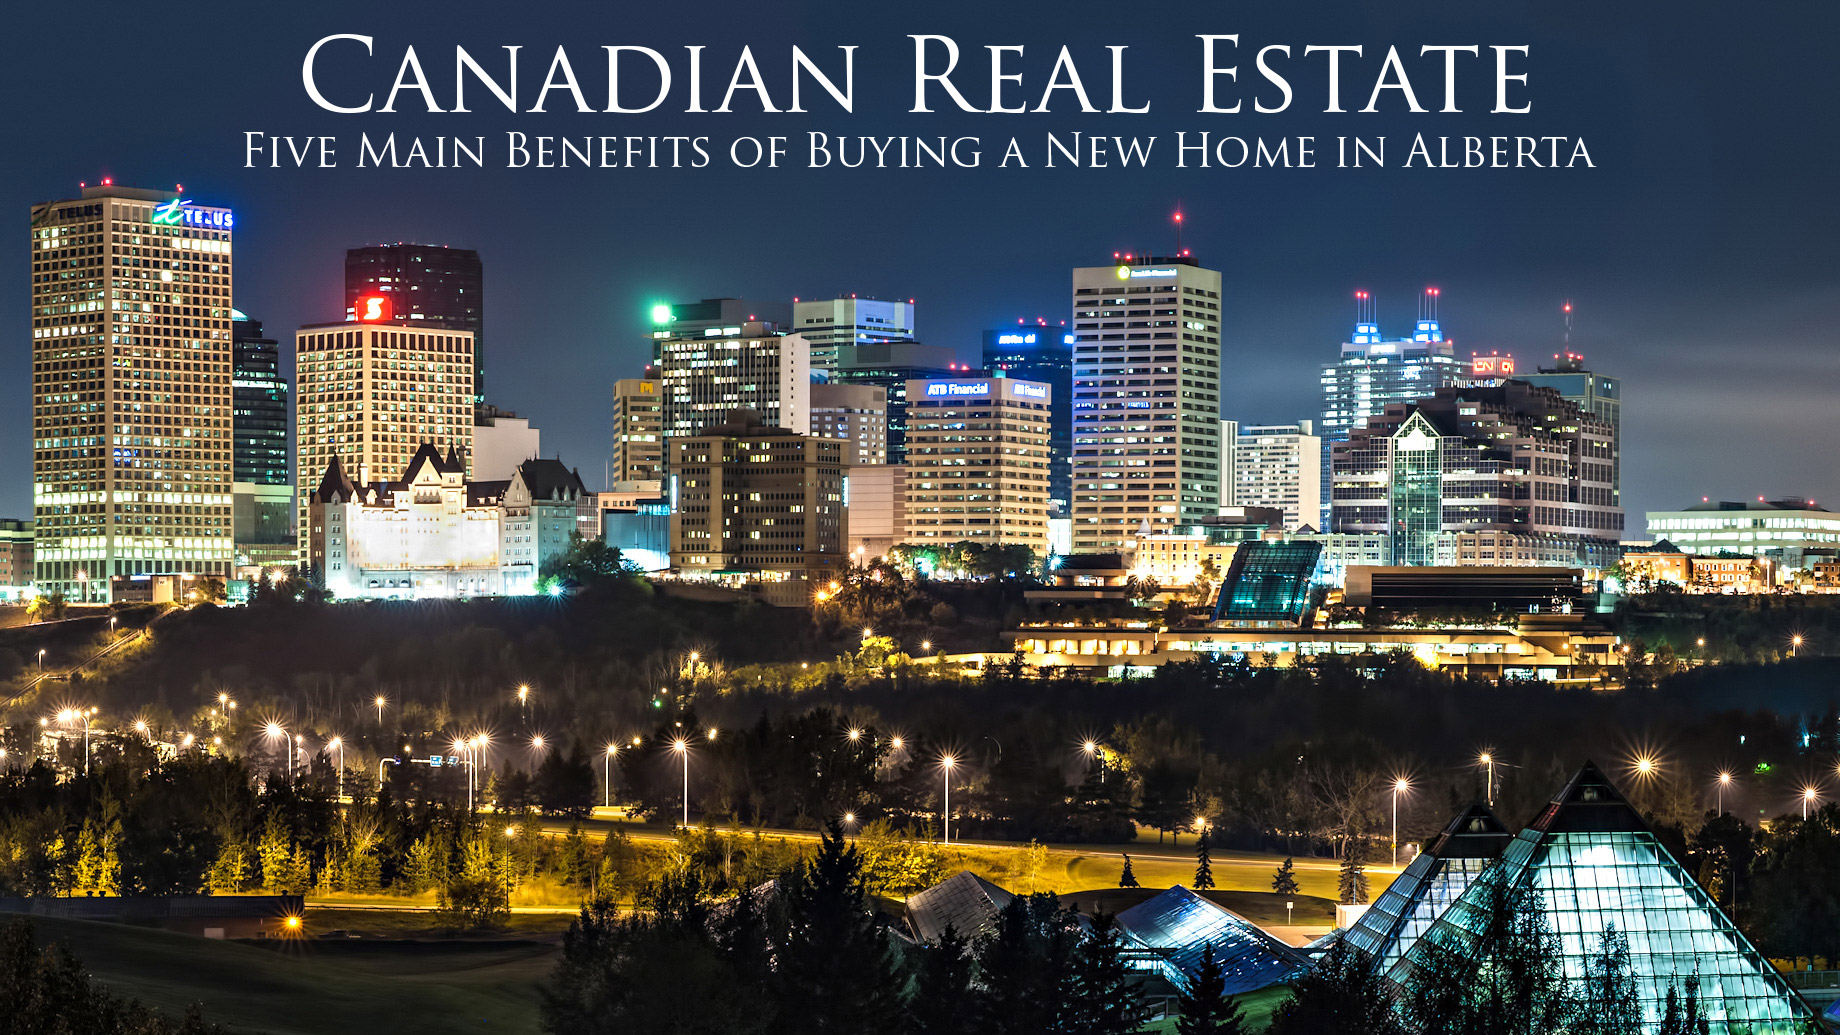 Canadian Real Estate - Five Main Benefits of Buying a New Home in Alberta